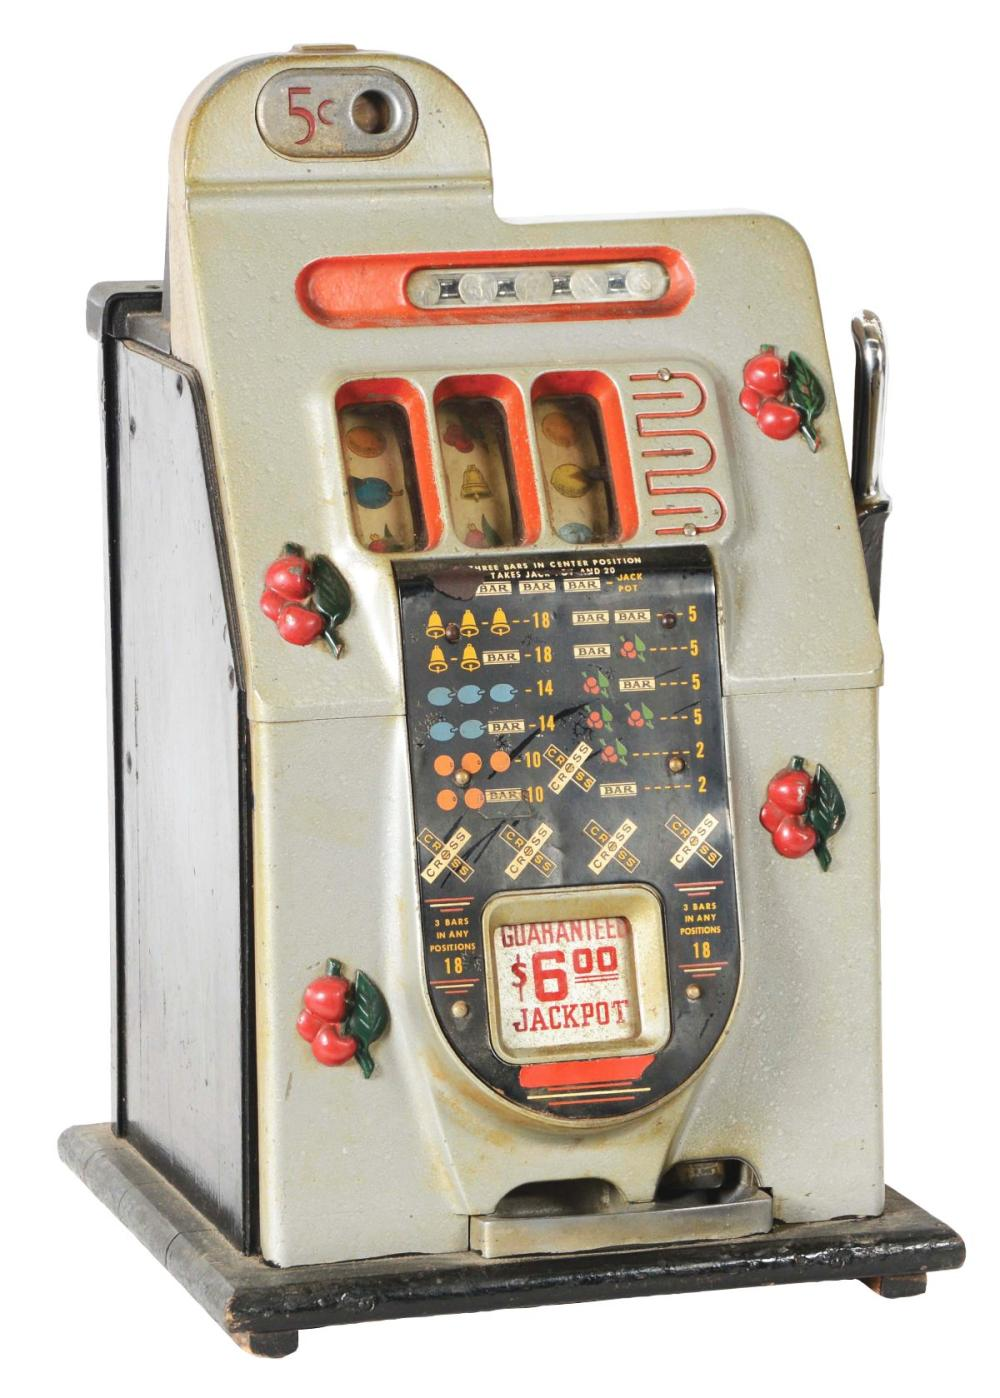 5¢ MILLS NOVELTY CO. BLACK CHERRIE SLOT MACHINE.